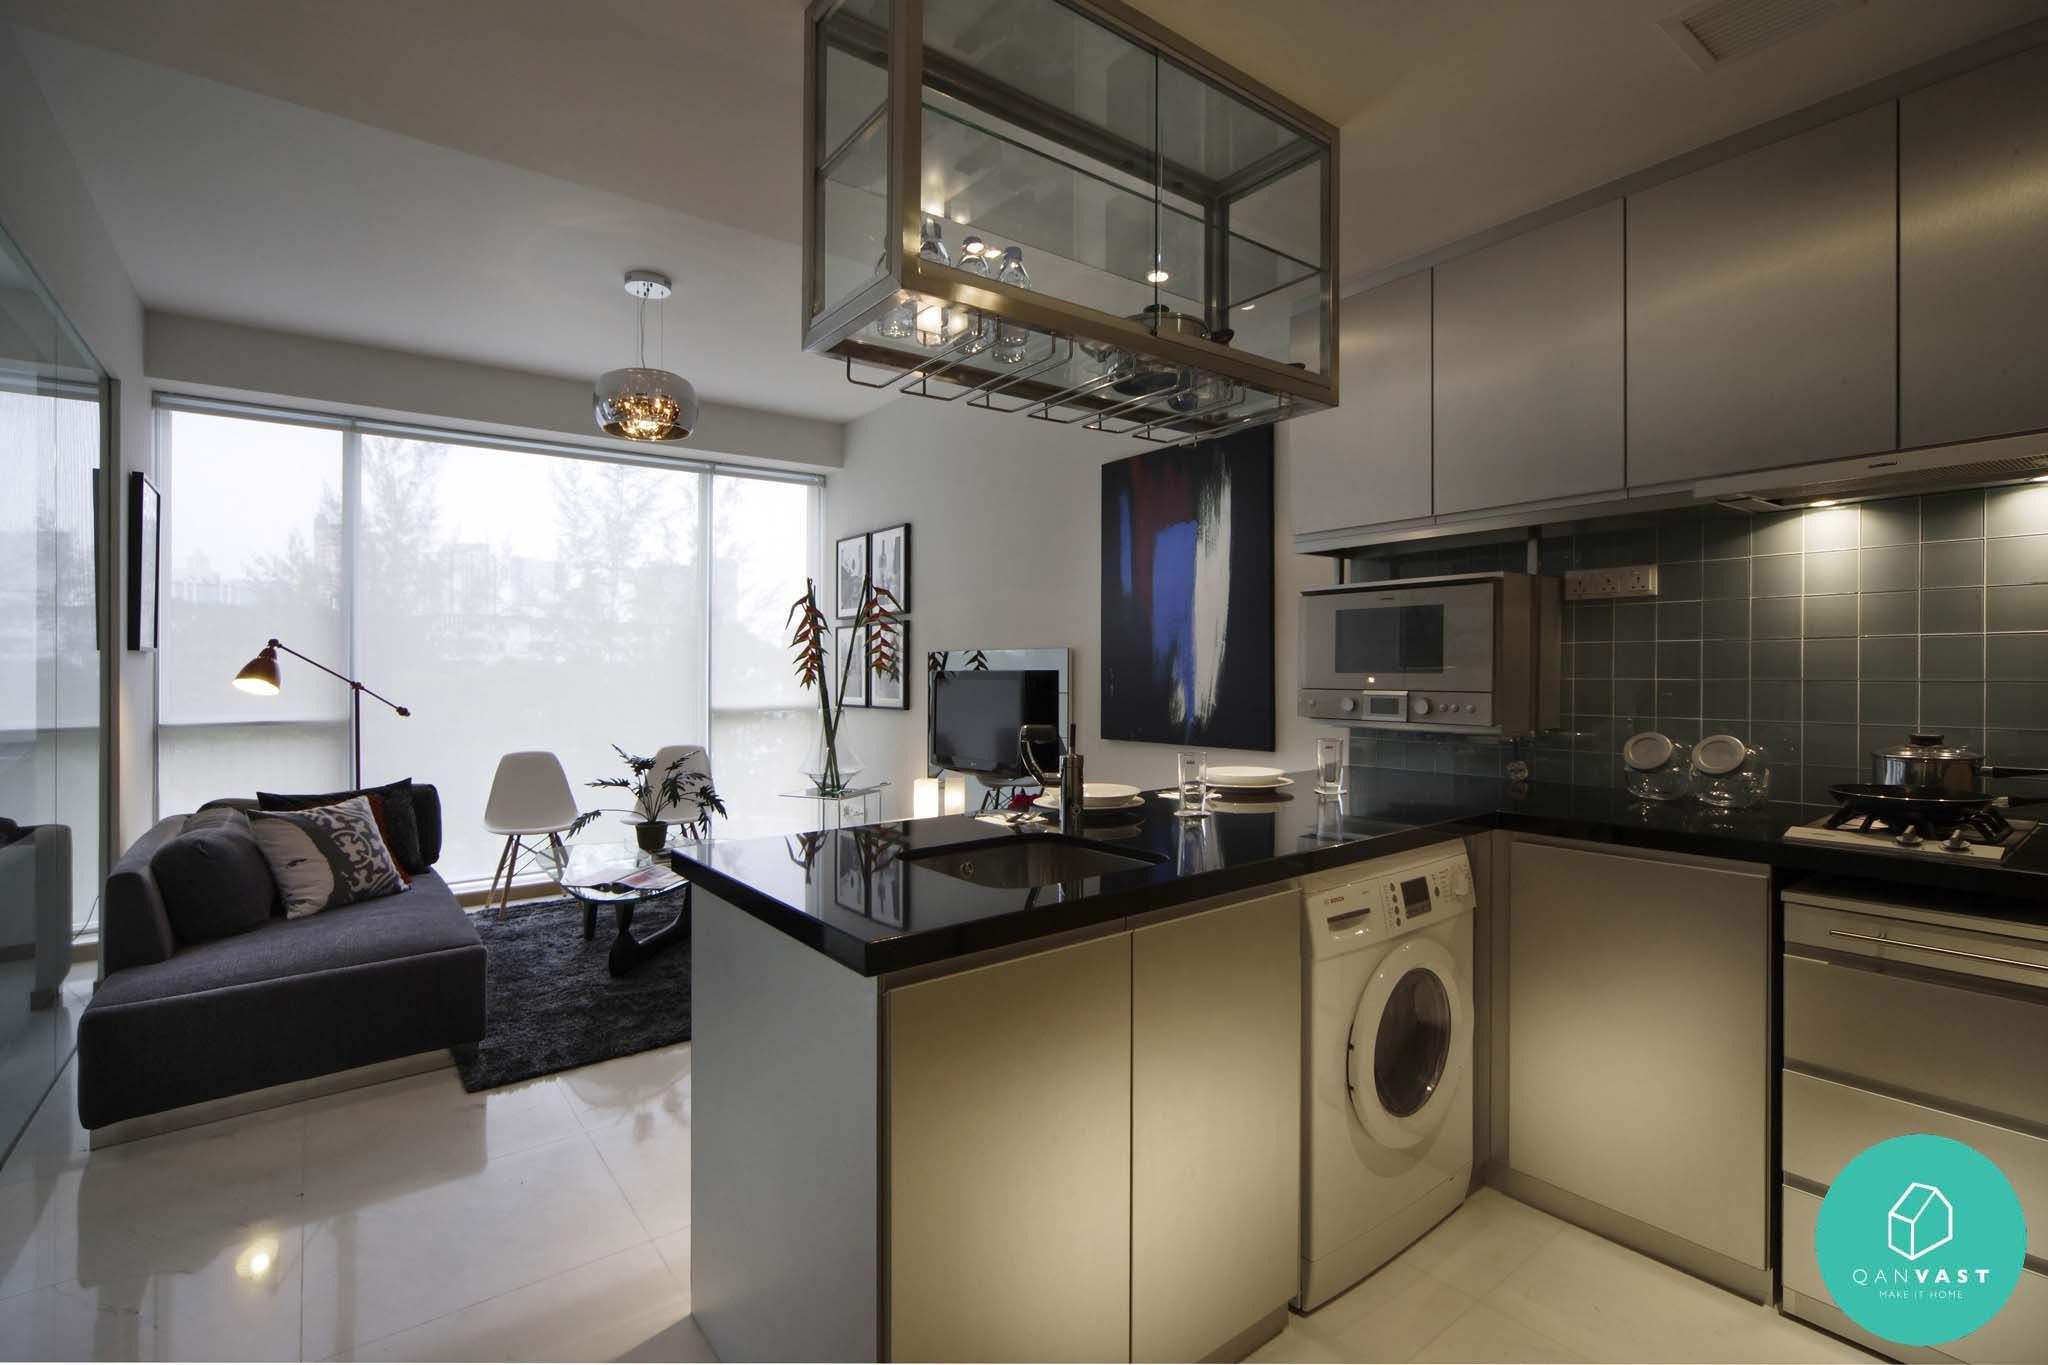 12 Kitchens That Gordon Ramsay Would Approve Of Washer machine